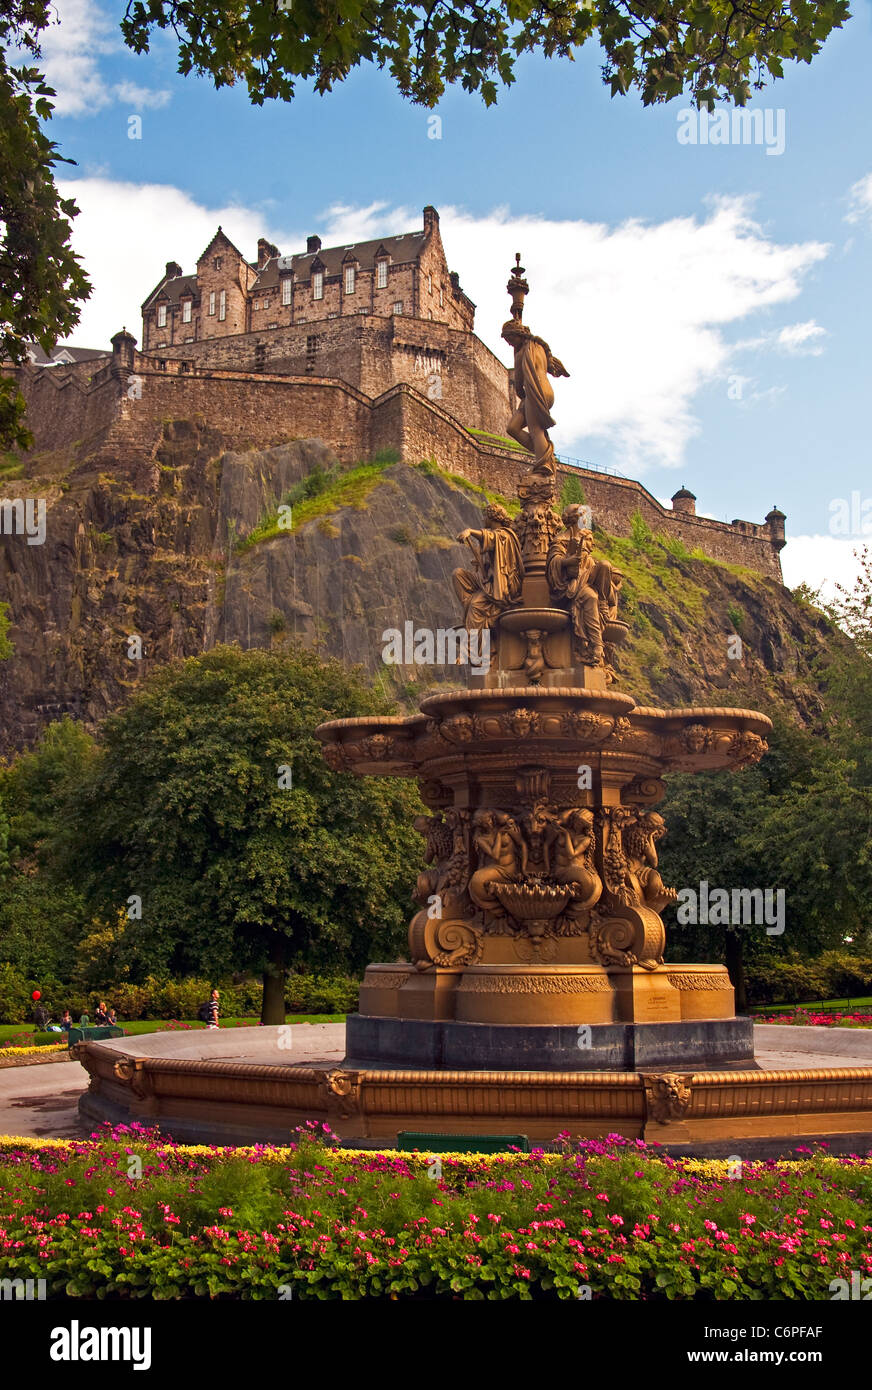 Edinburgh Castle on volcanic castle rock from West Princes Street Gardens with Ross Fountain sculpture by Jean-Baptiste - Stock Image